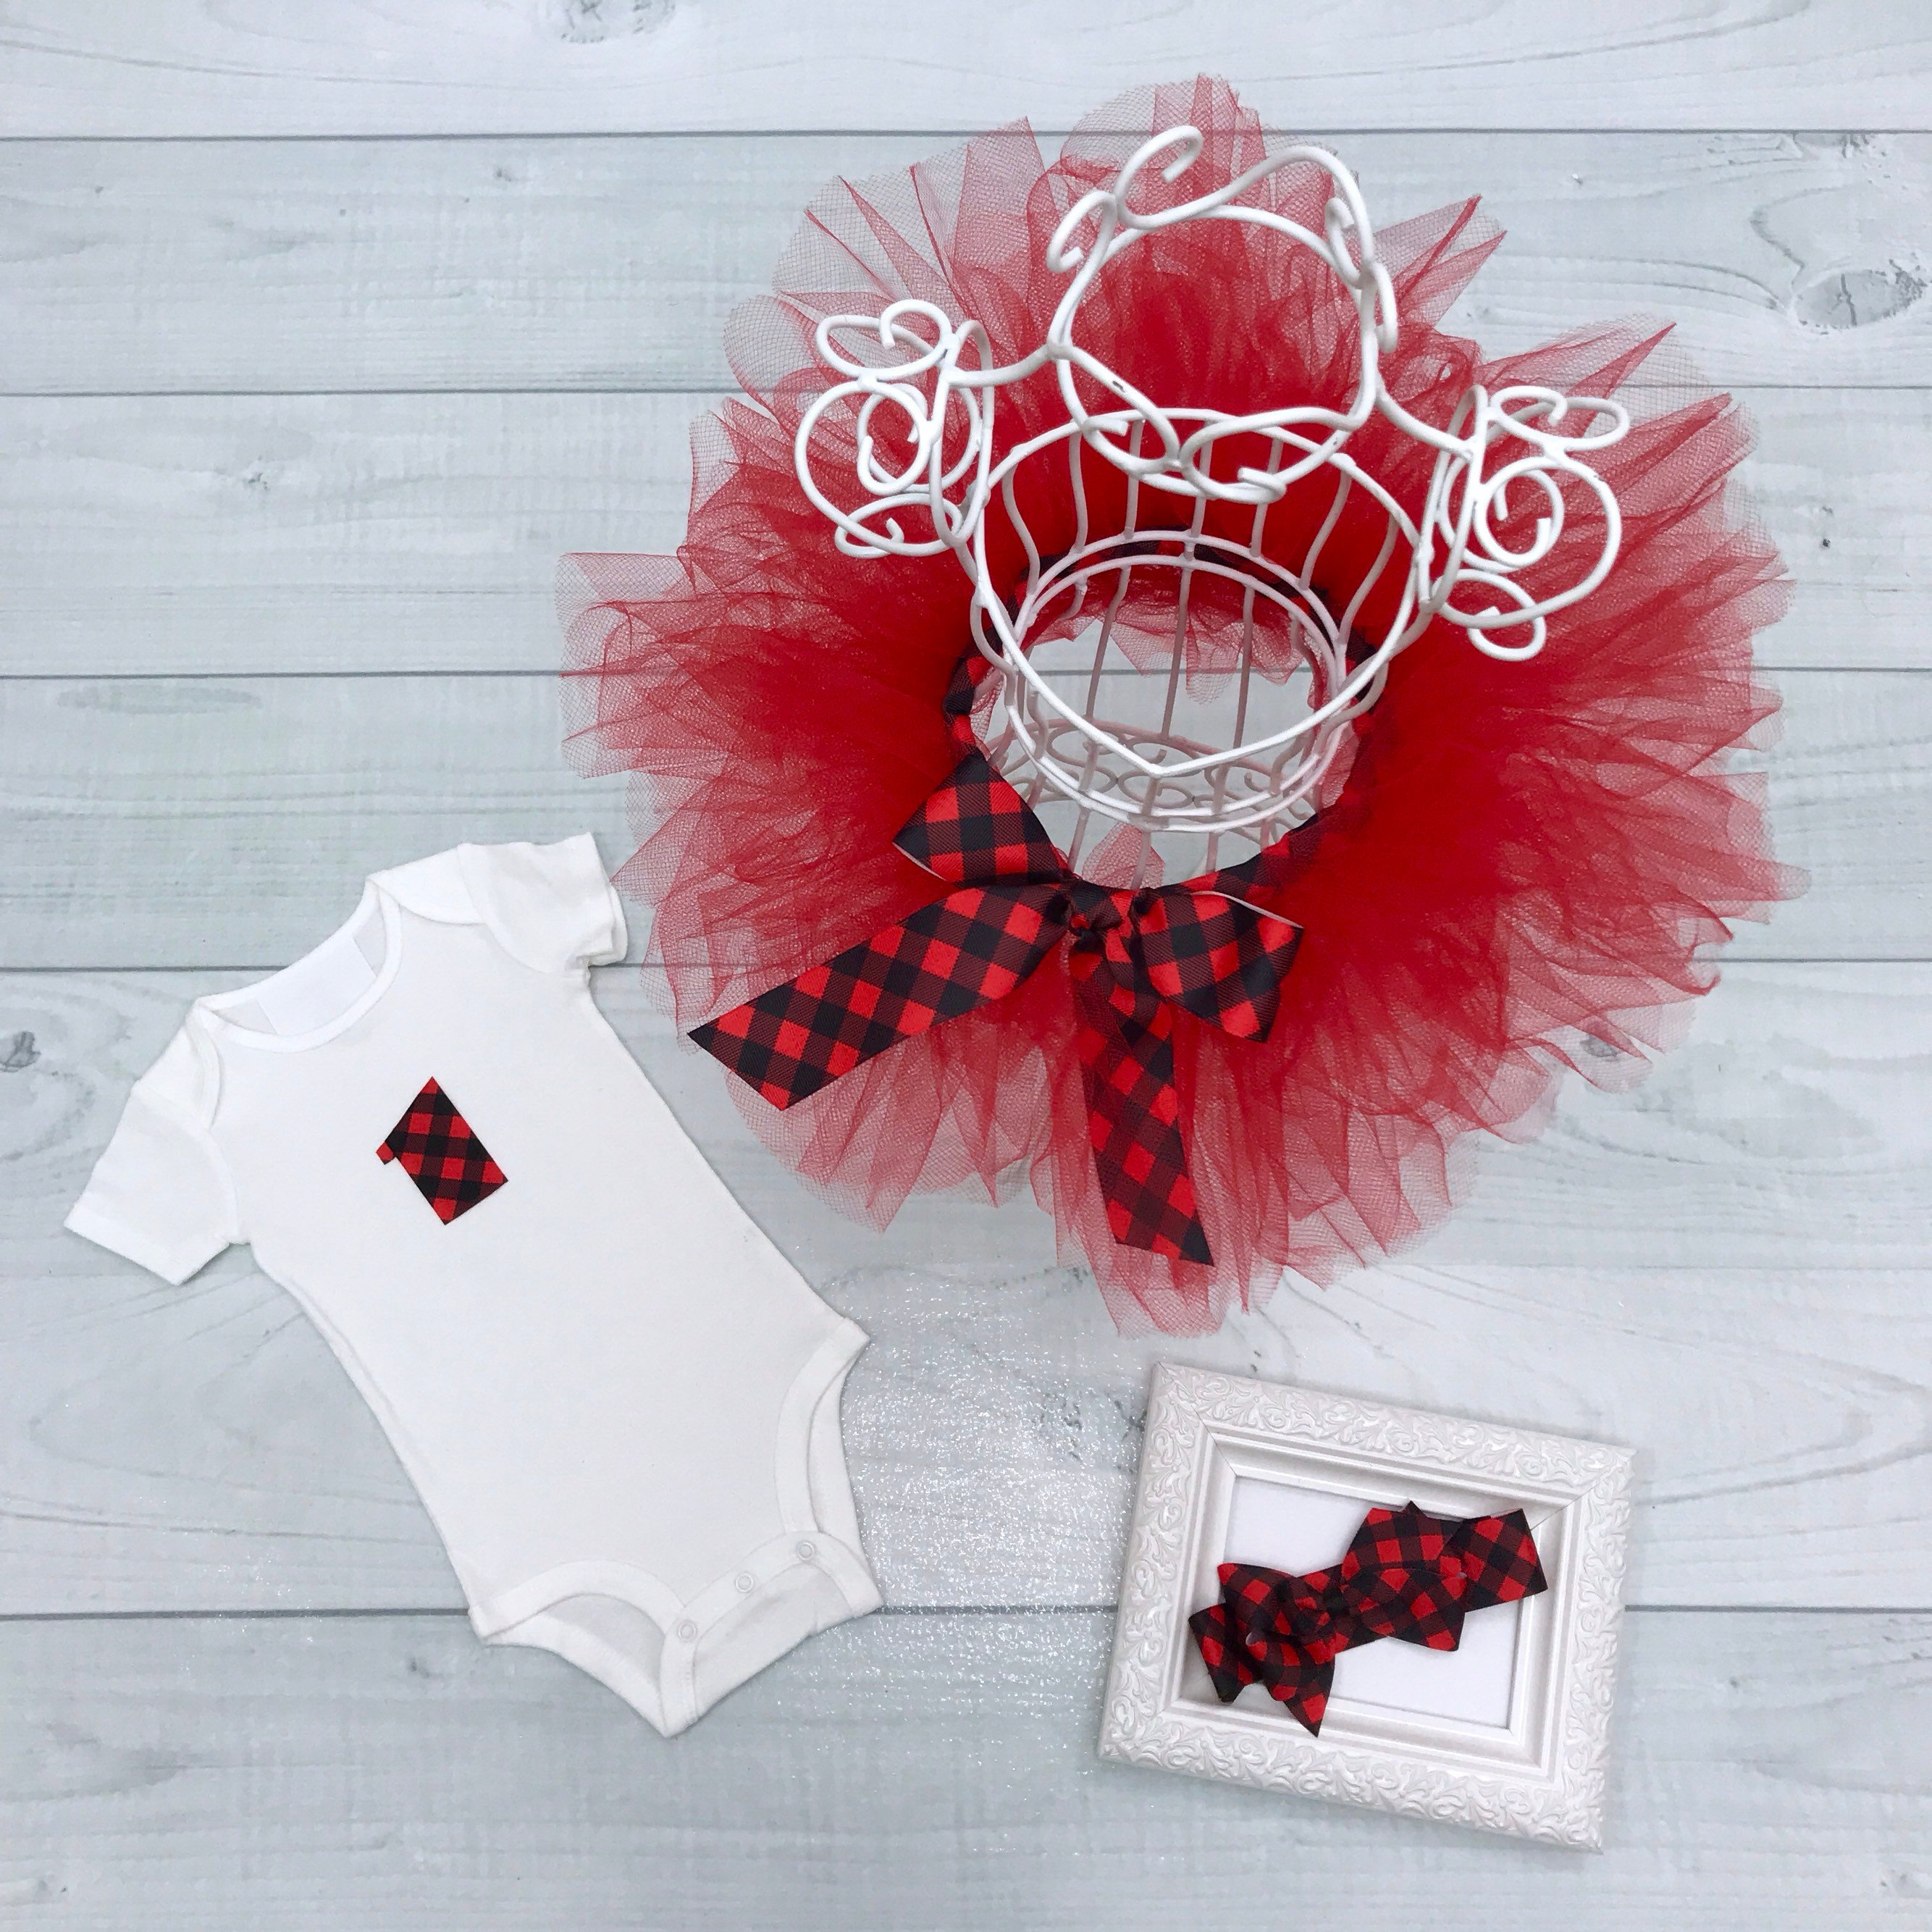 Buffalo Plaid Tutu Set, Baby Girl First Birthday Outfit, Red & Black Buffalo Check Ribbon Bow Headband, Infant Toddler Child 1st Bday Onesie